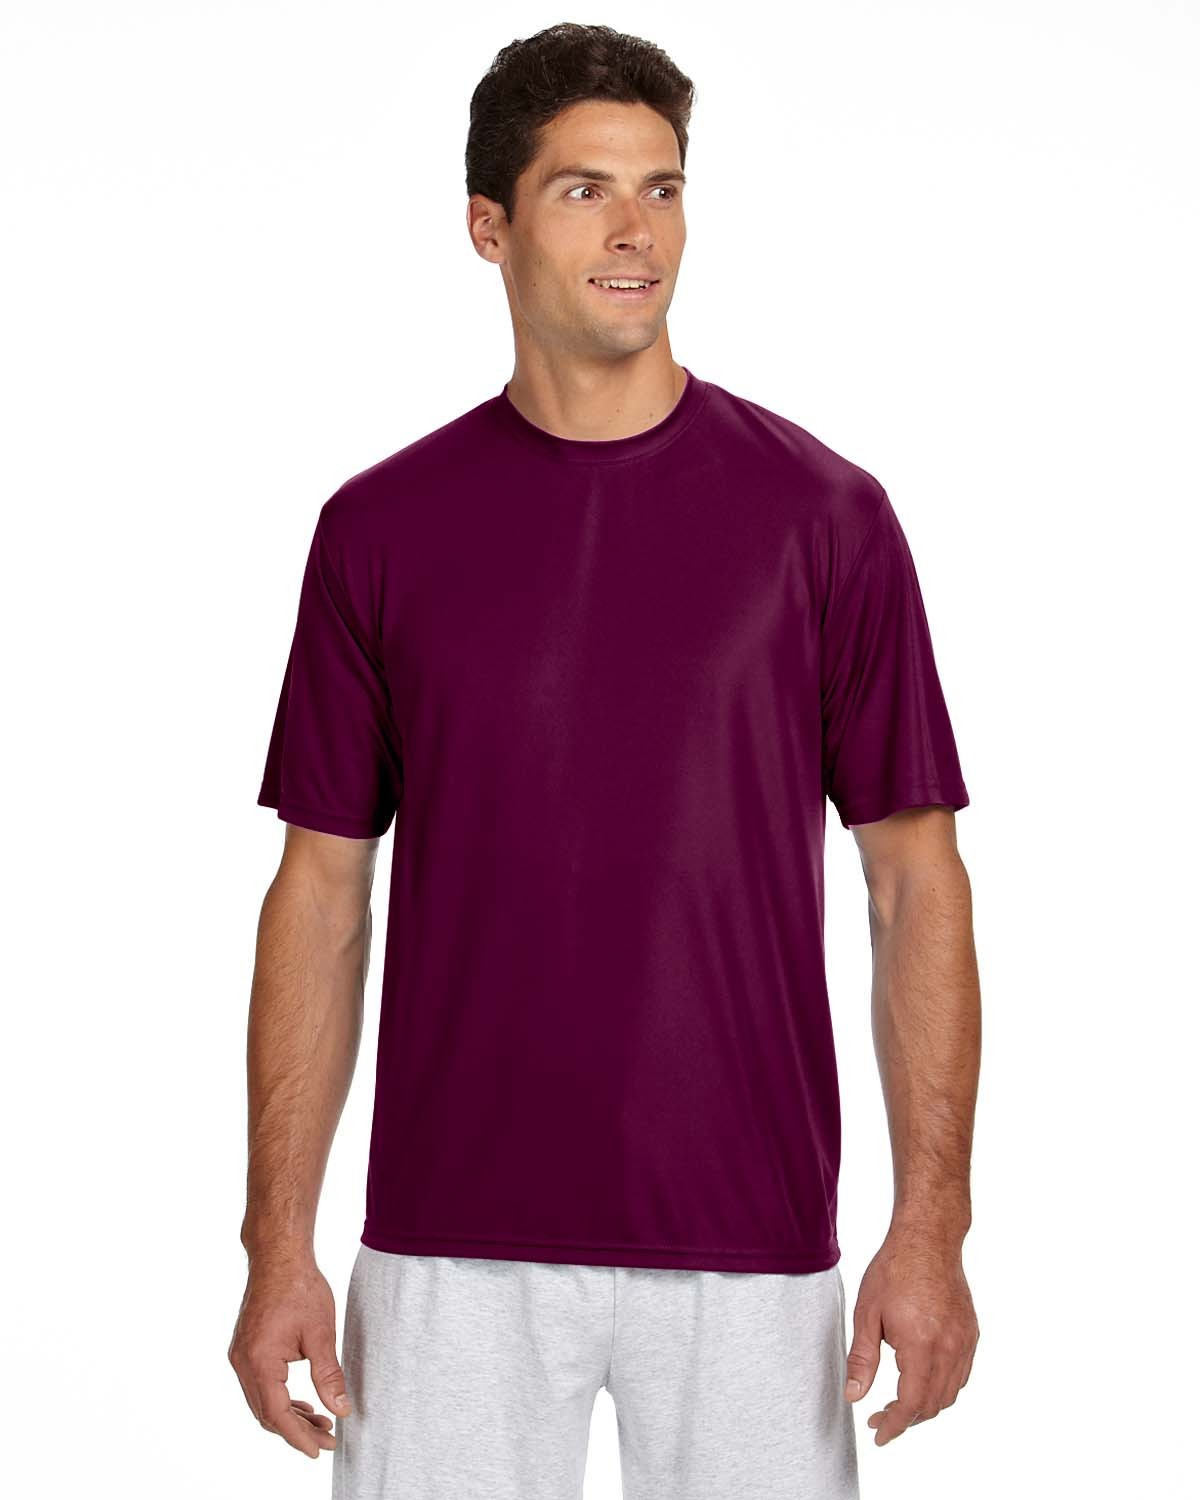 N3142 A4 Apparel MAROON